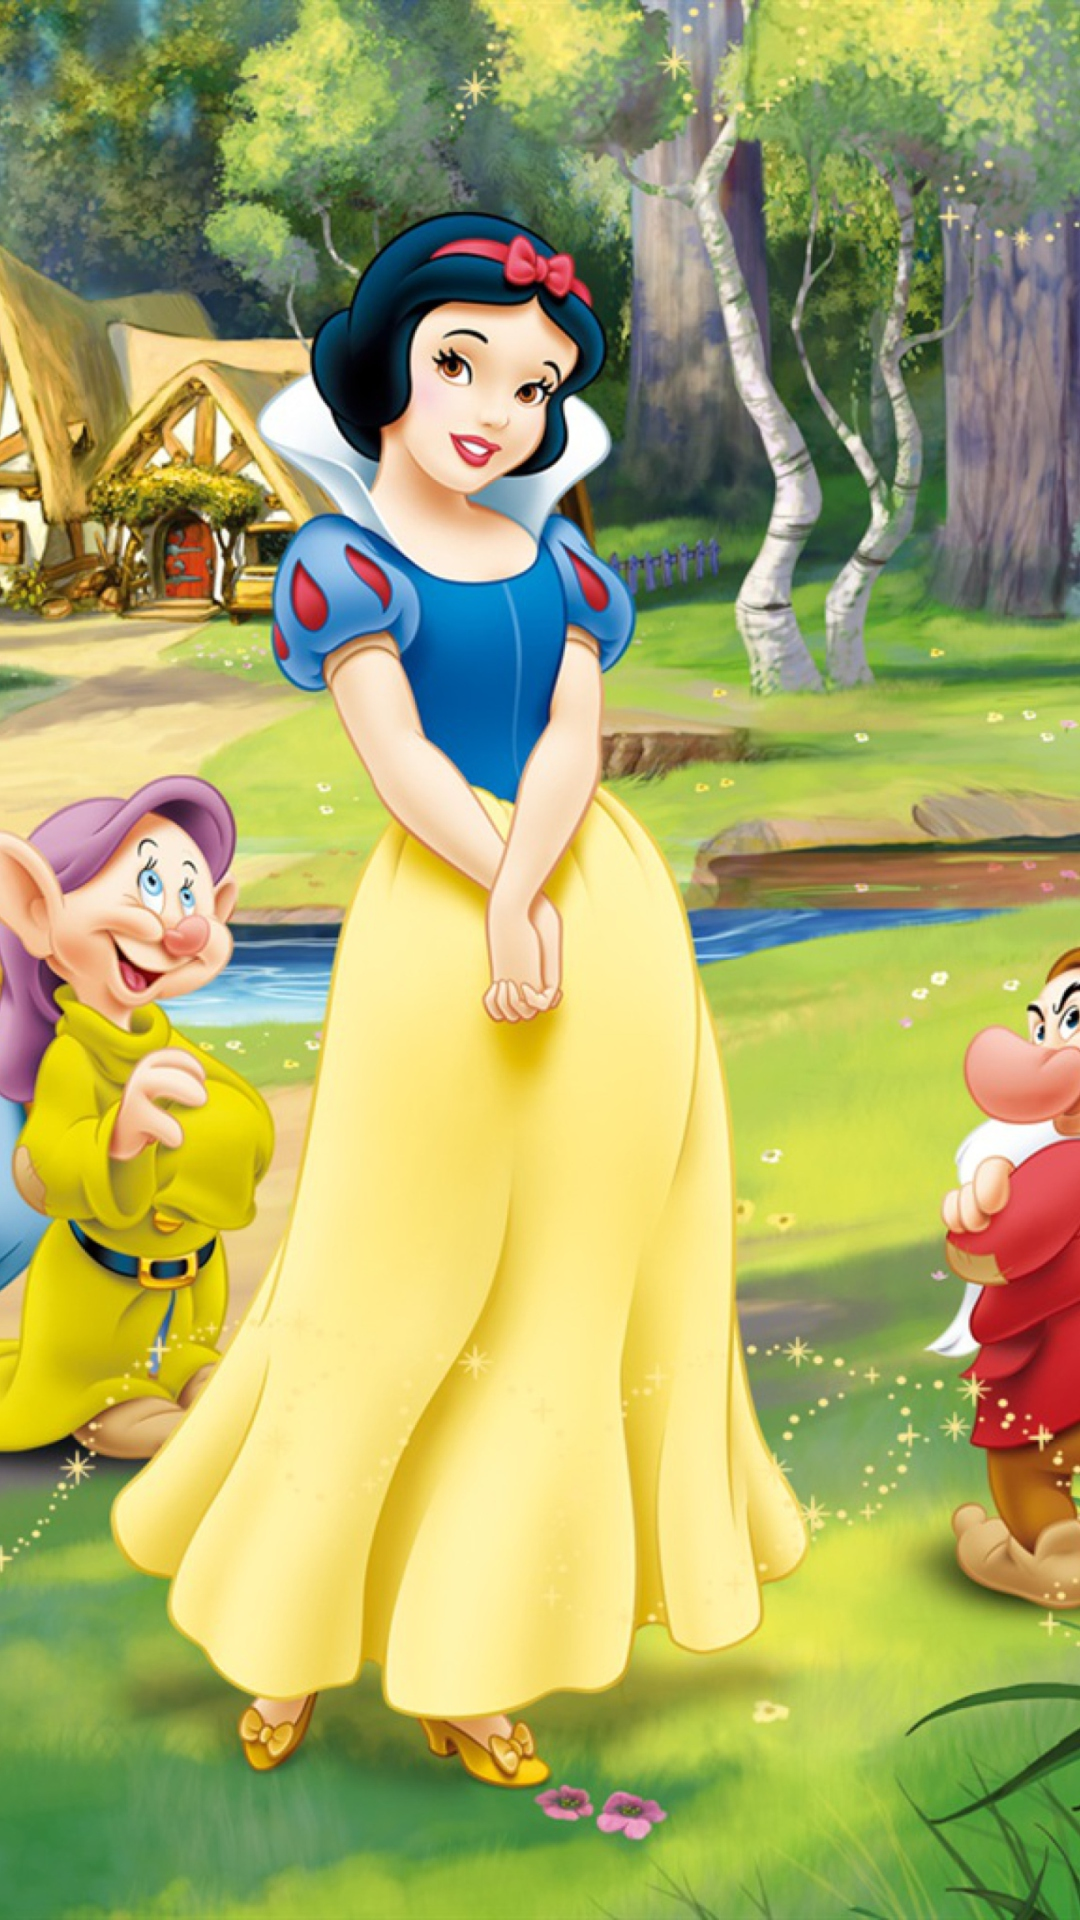 snow white and the seven dwarfs - HD1080×1920